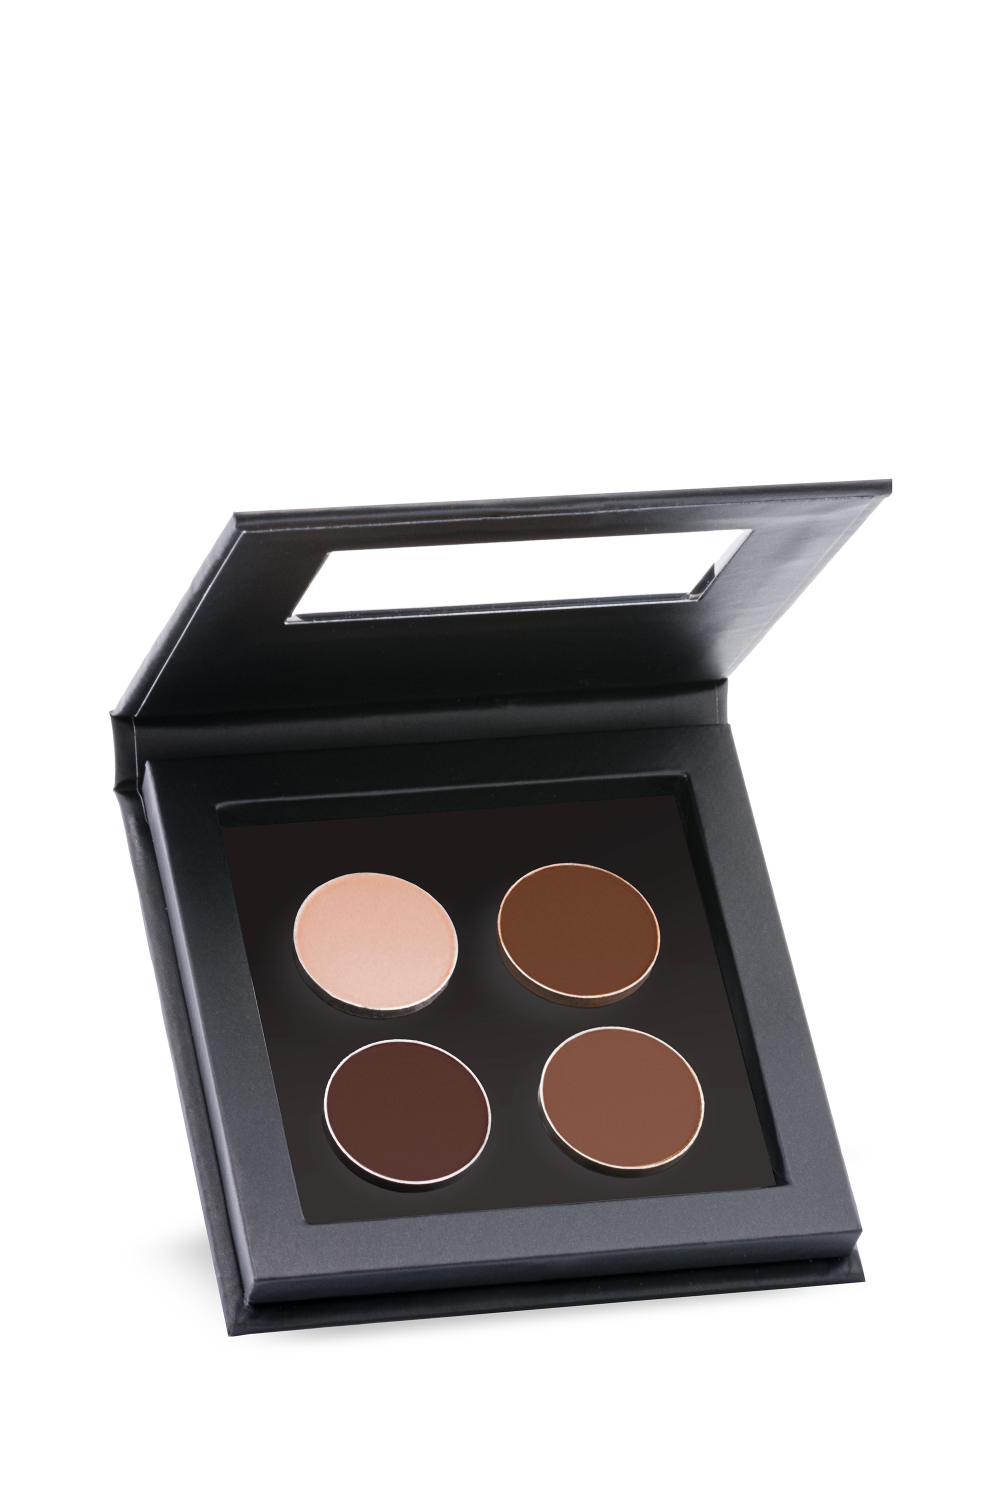 BARK BROWN - EYE SHADOW PALETTE